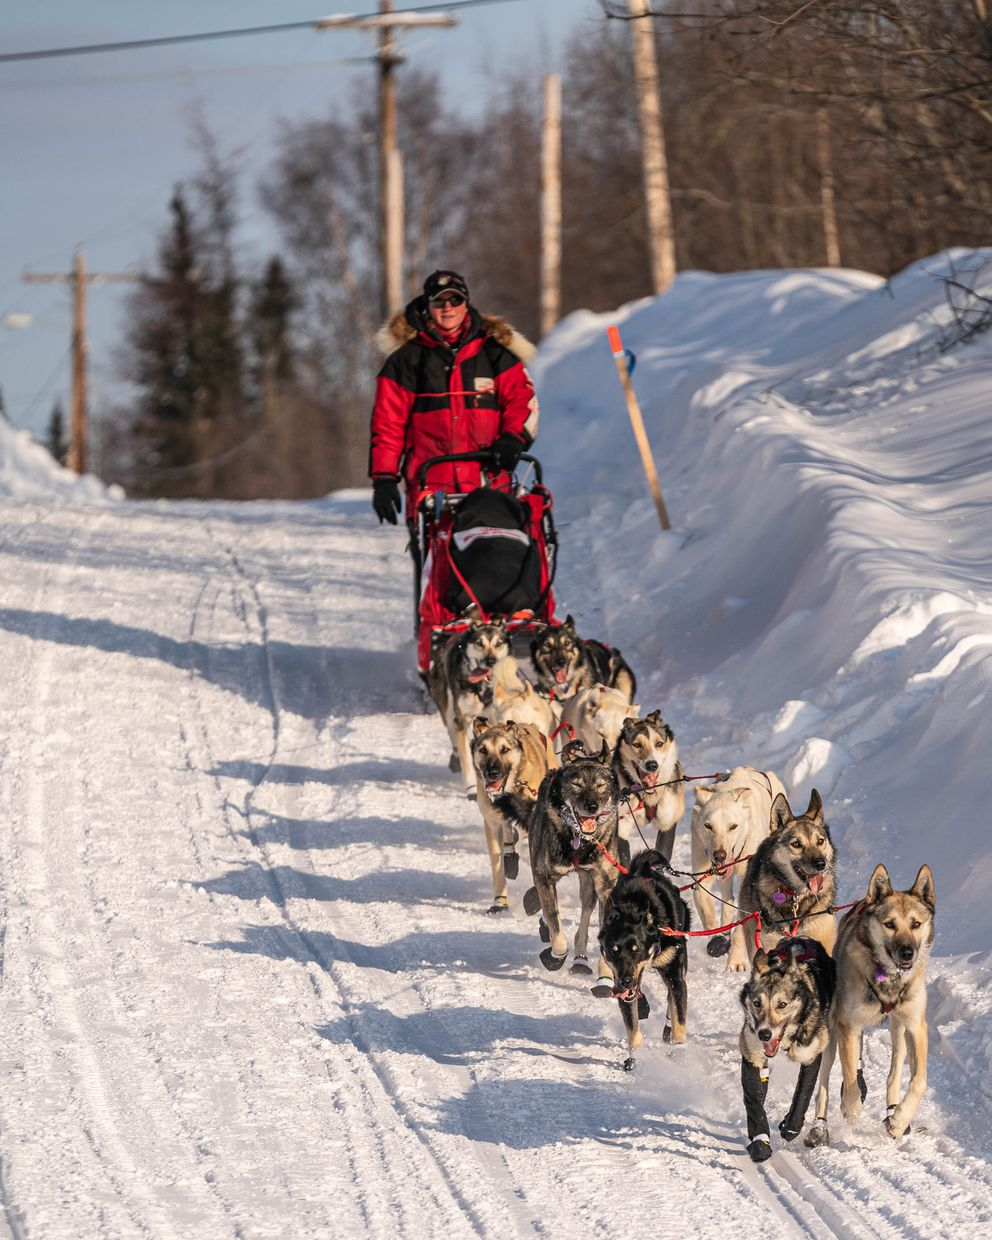 Laura Neese arrives in Takotna on Wednesday, March 11, 2020 during the Iditarod Trail Sled Dog Race. (Loren Holmes / ADN)